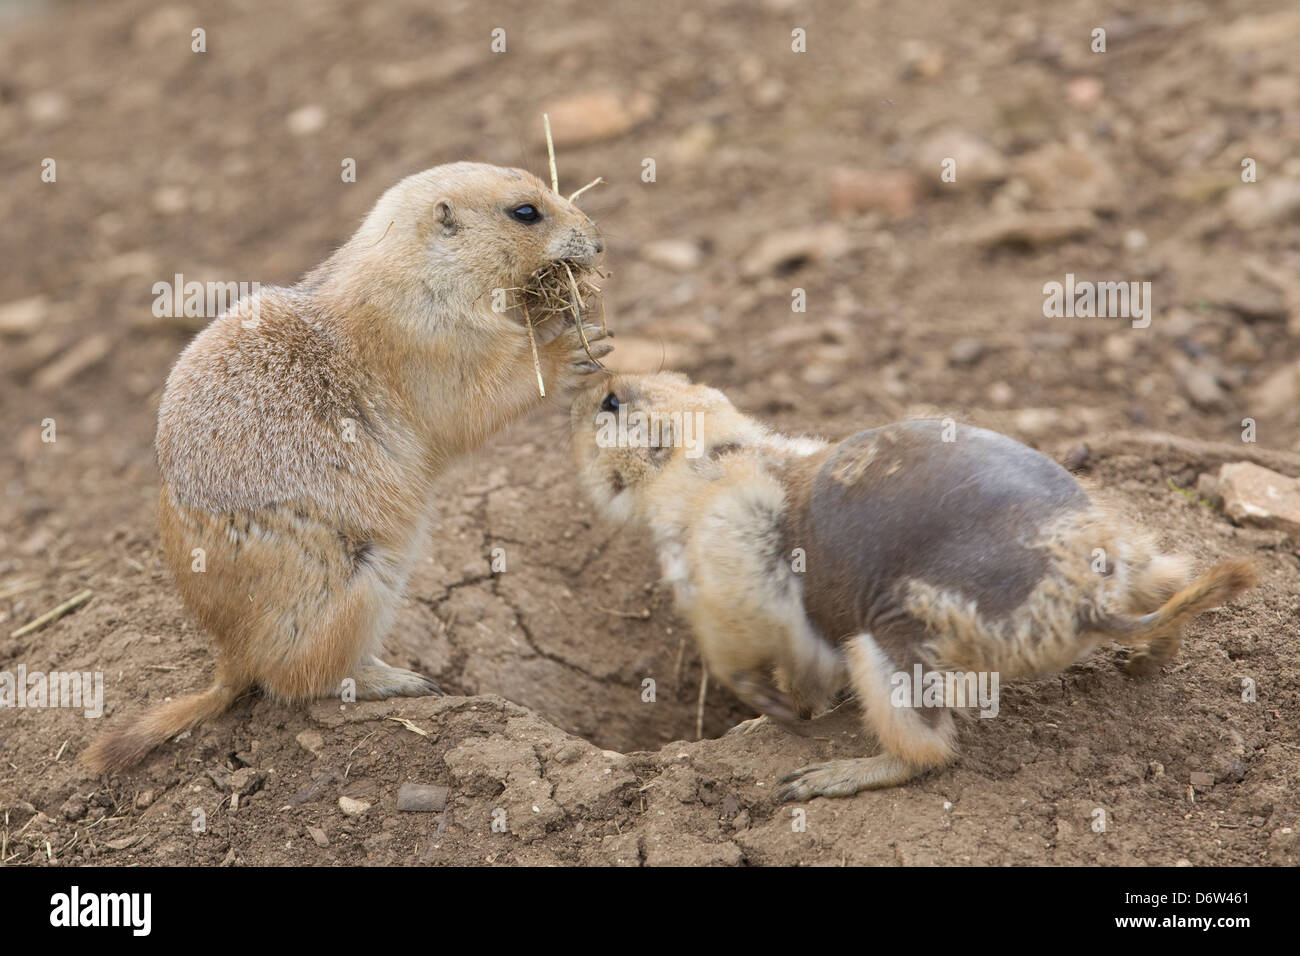 black-tailed prairie dog Cynomys ludovicianus burrowing rodents moulting - Stock Image